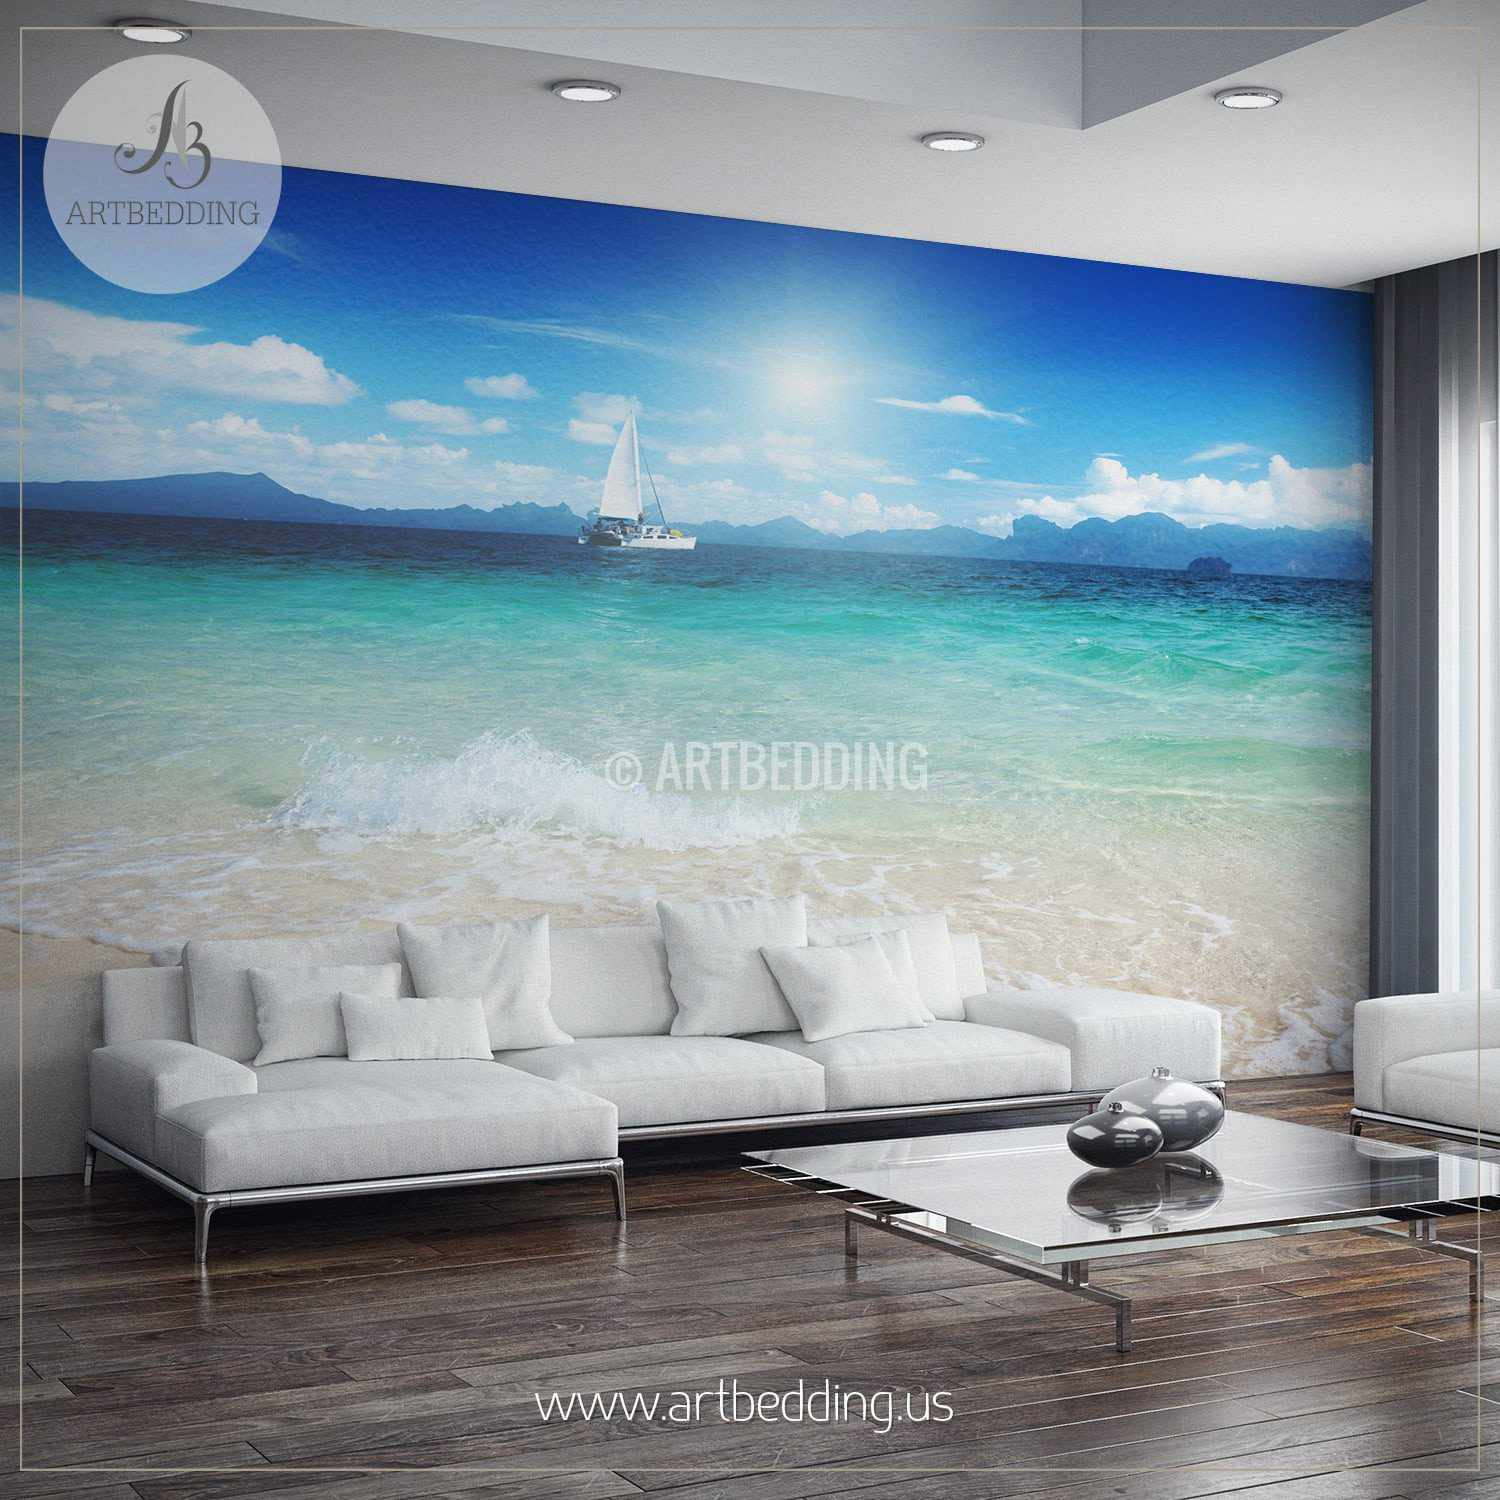 Yacht From The Shore Wall Mural, Self Adhesive Peel U0026 Stick Photo Mural,  Nature ... Part 91